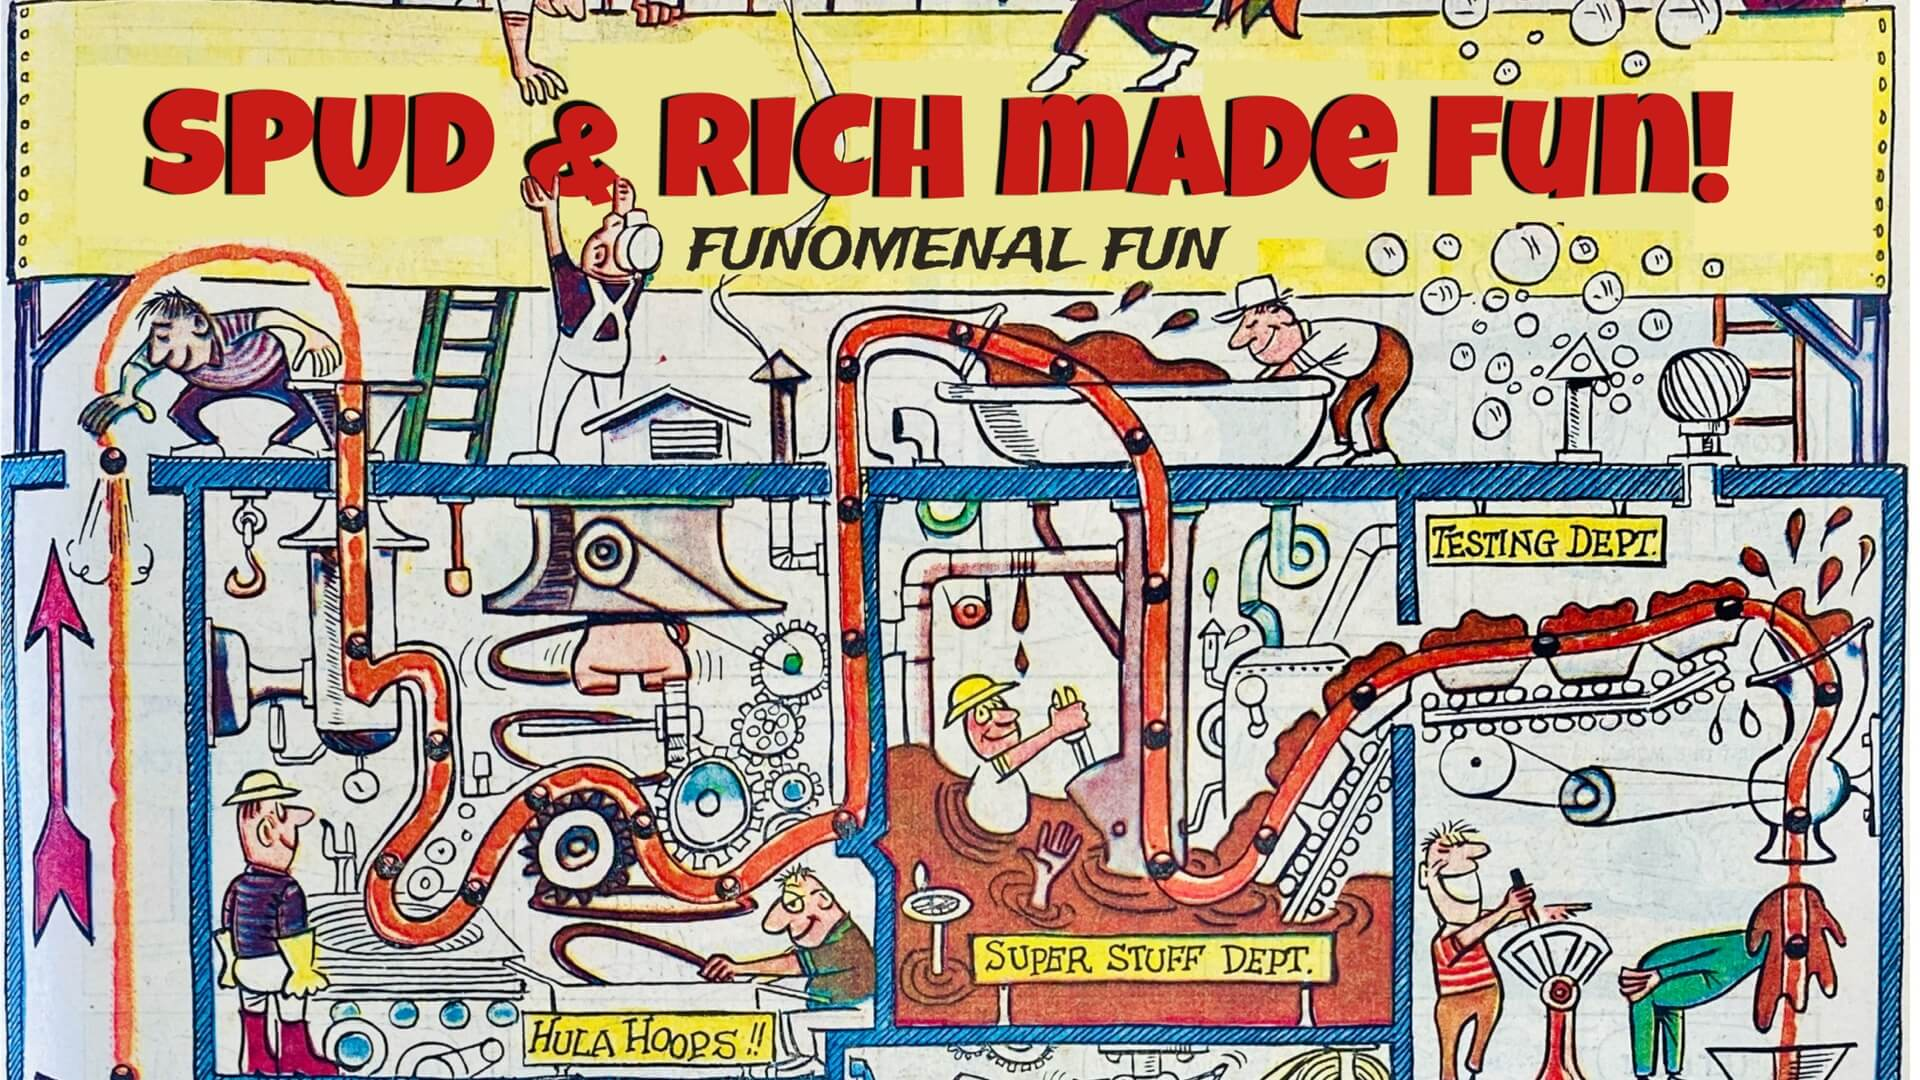 Video animation of 35 Years of Fun from Spud 'n Rich